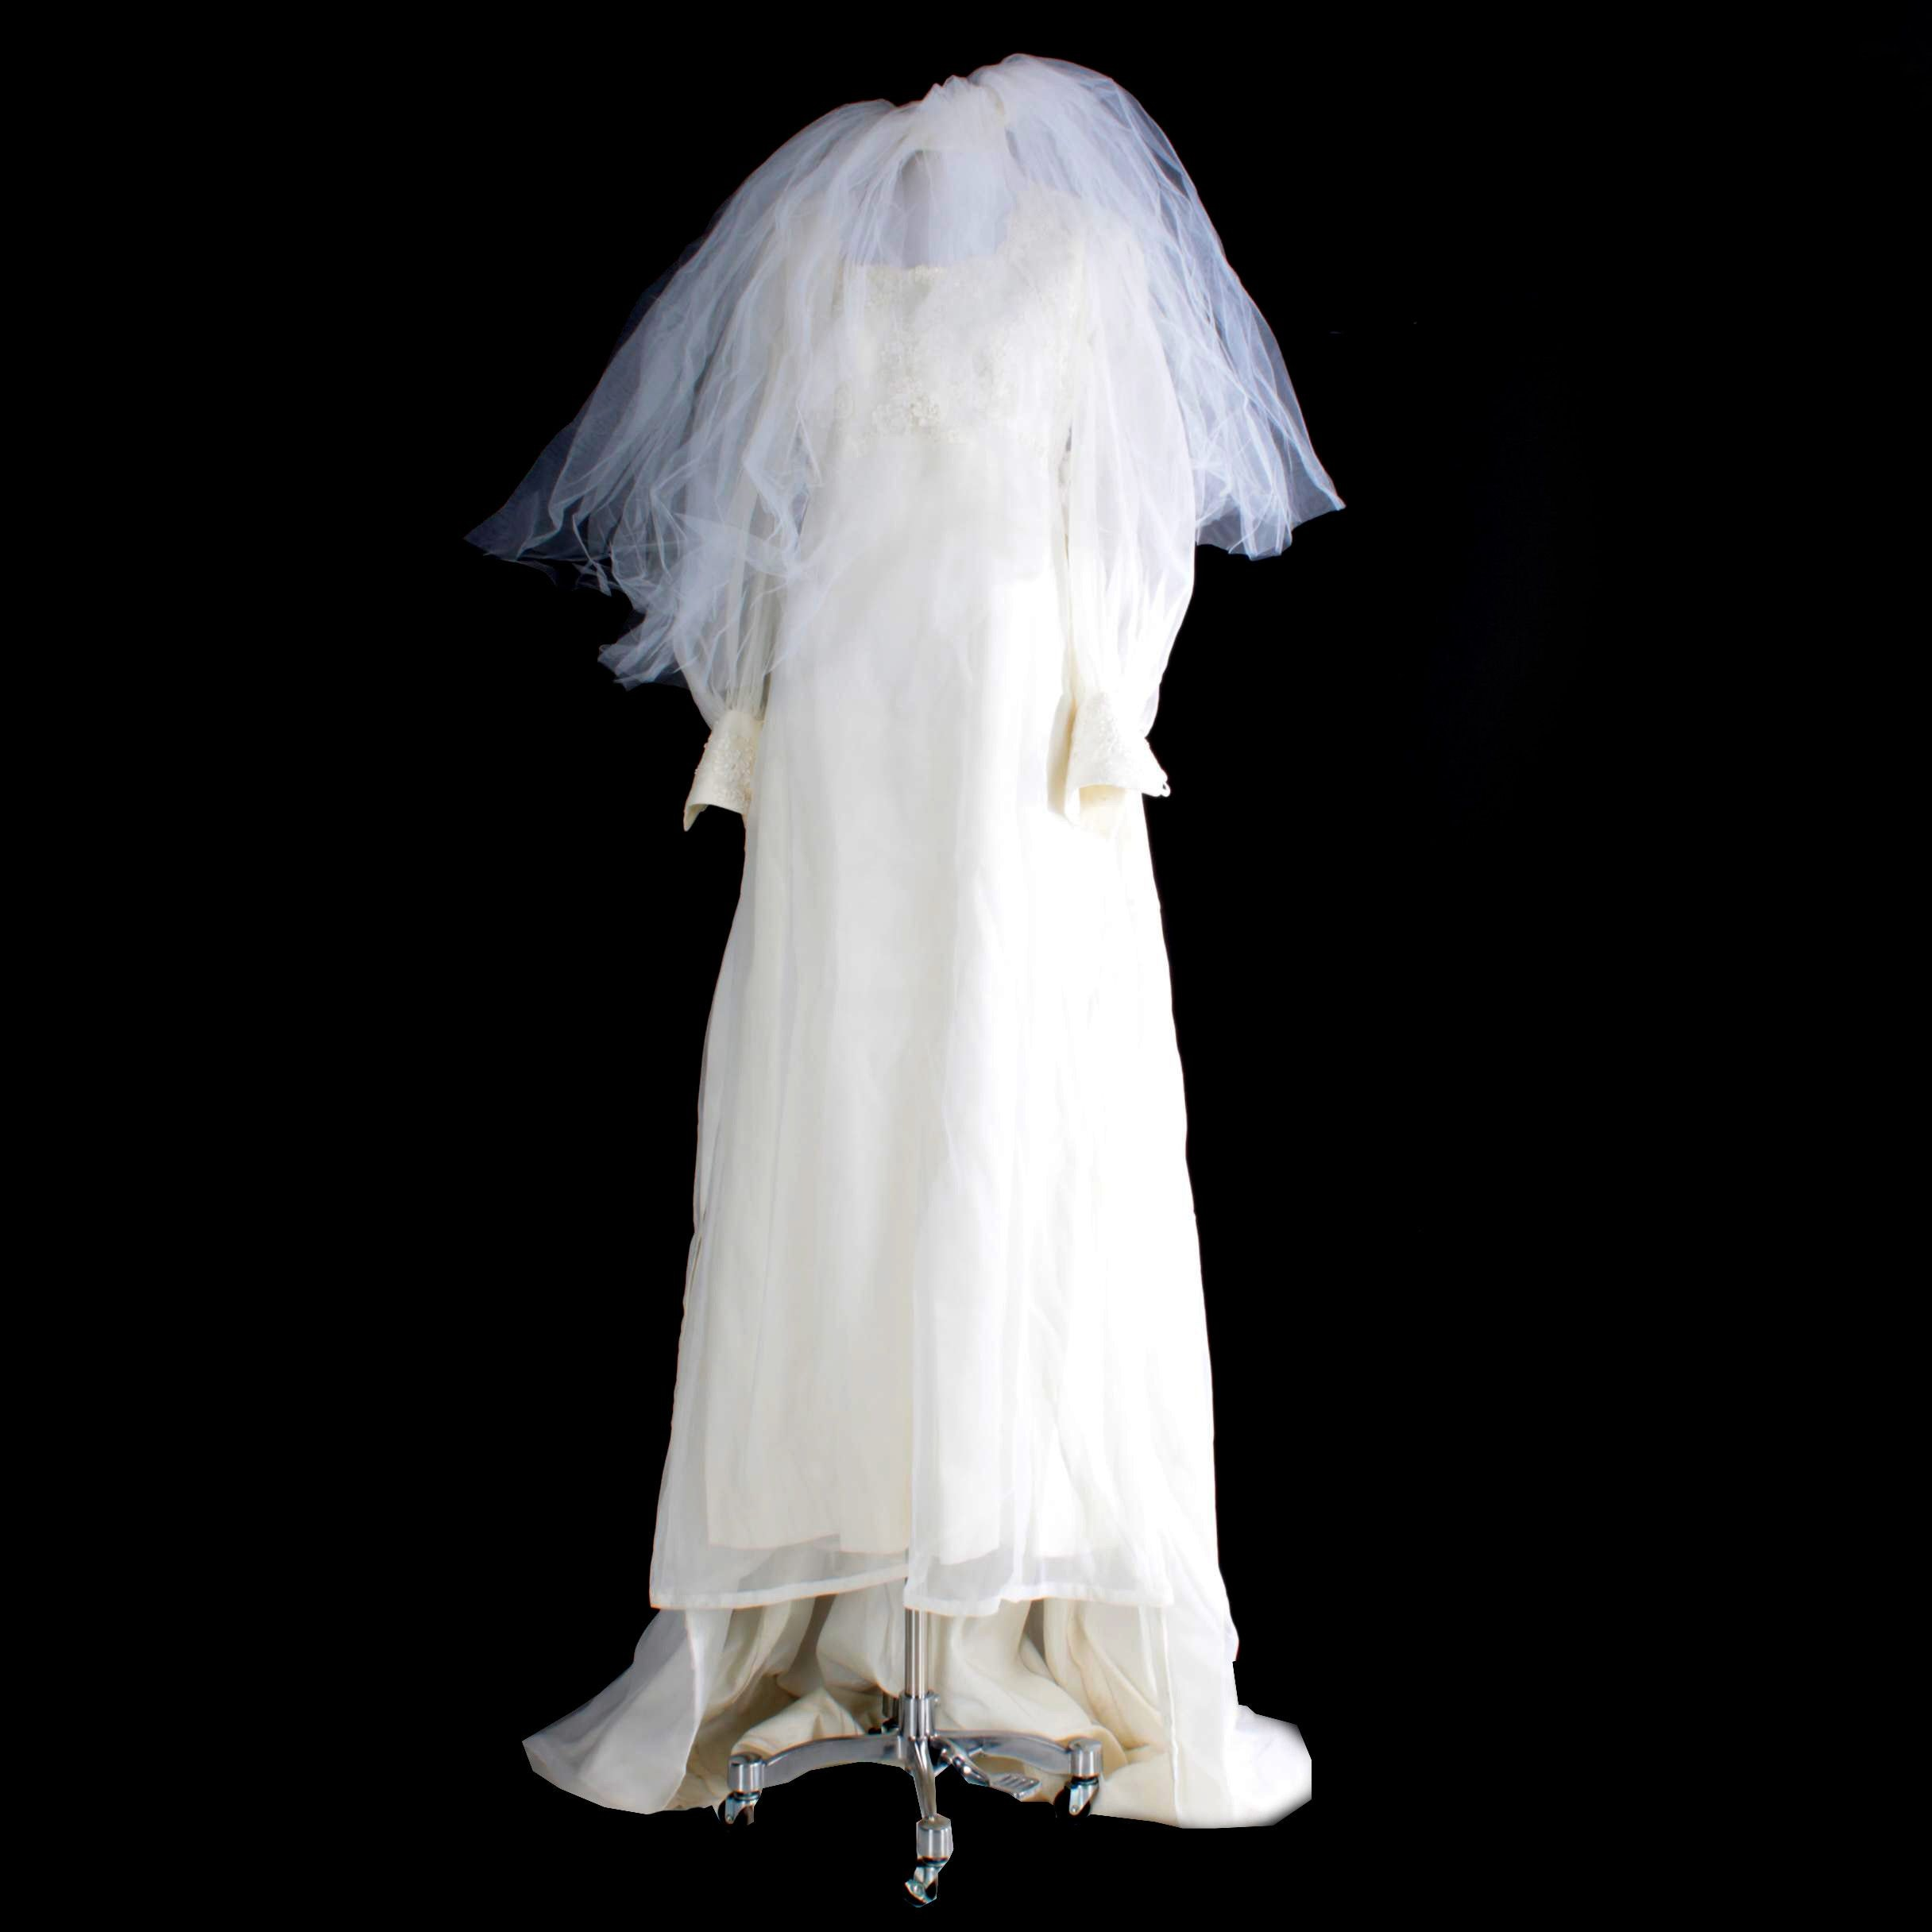 Circa 1960s Vintage Wedding Dress and Veil